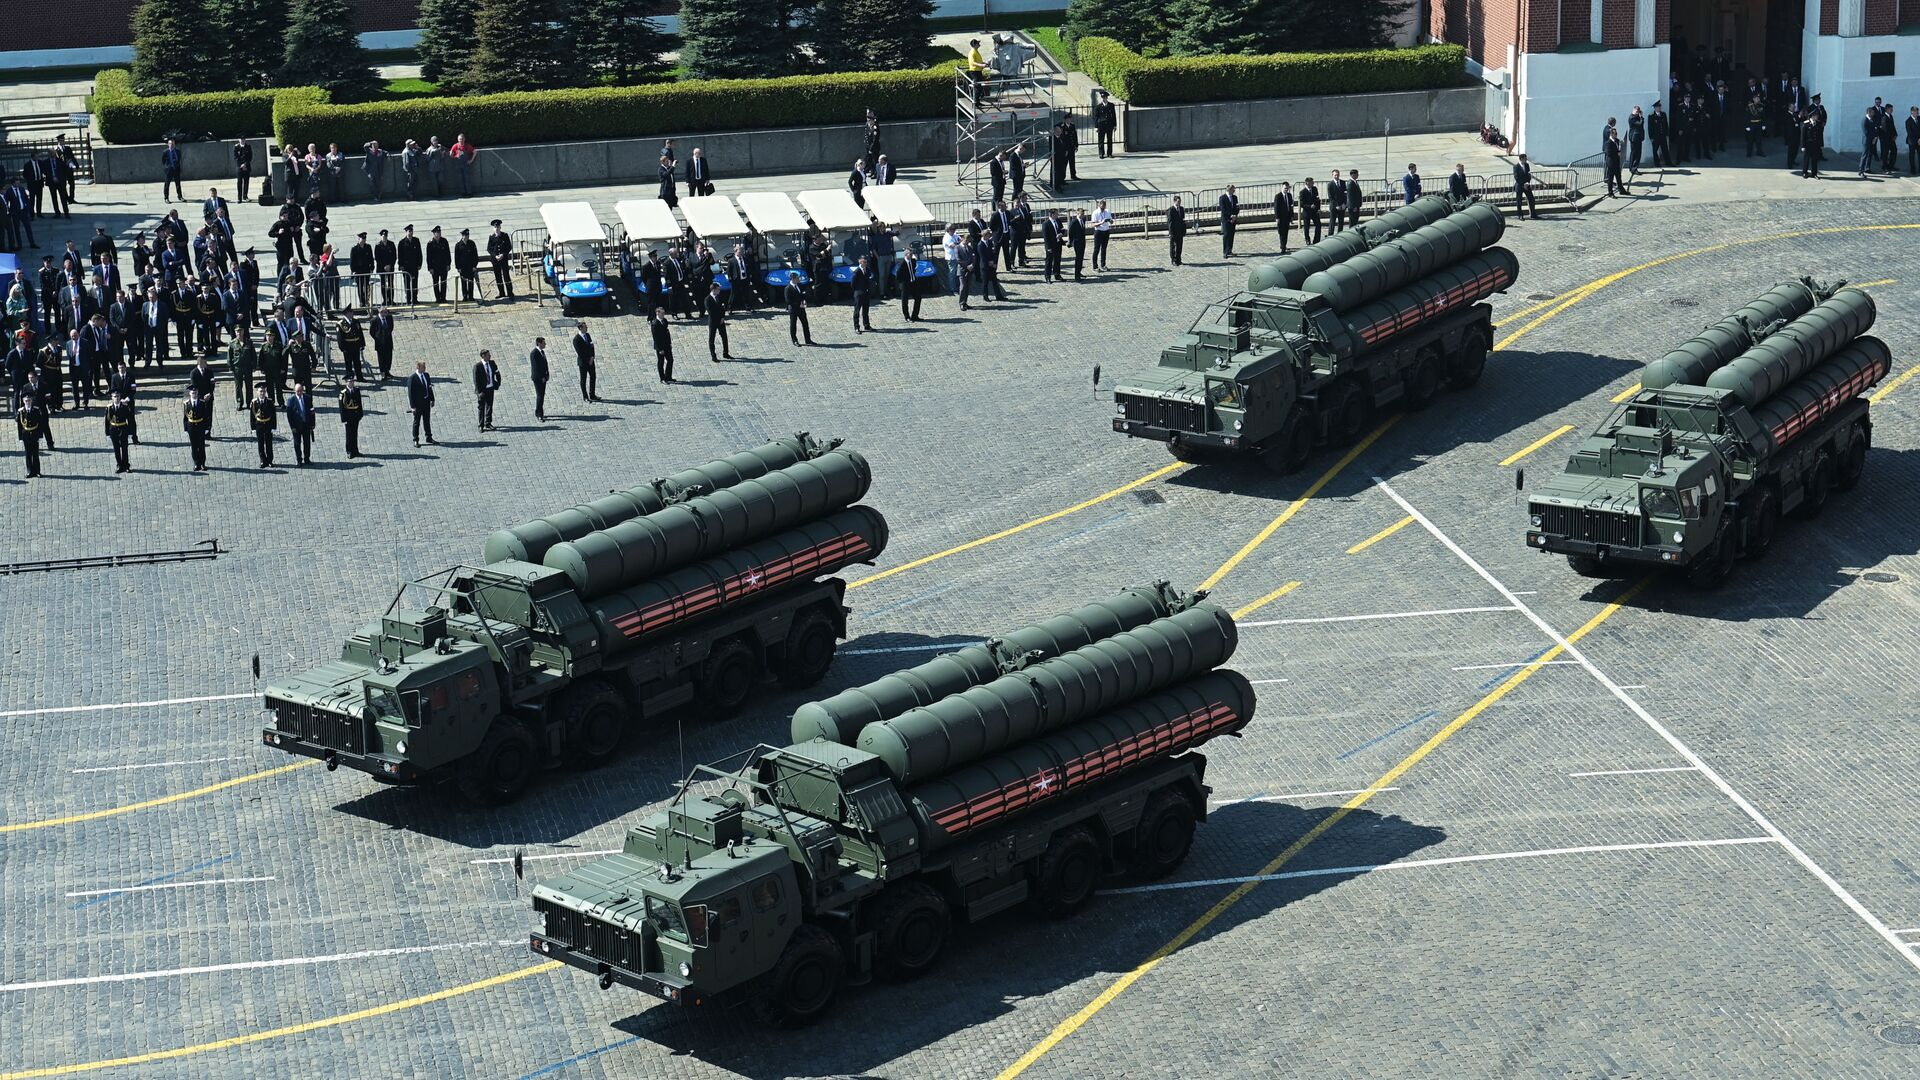 S-400 missile defence systems at the repetition of the Victory Day Parade, May 2019. - Sputnik International, 1920, 12.09.2021